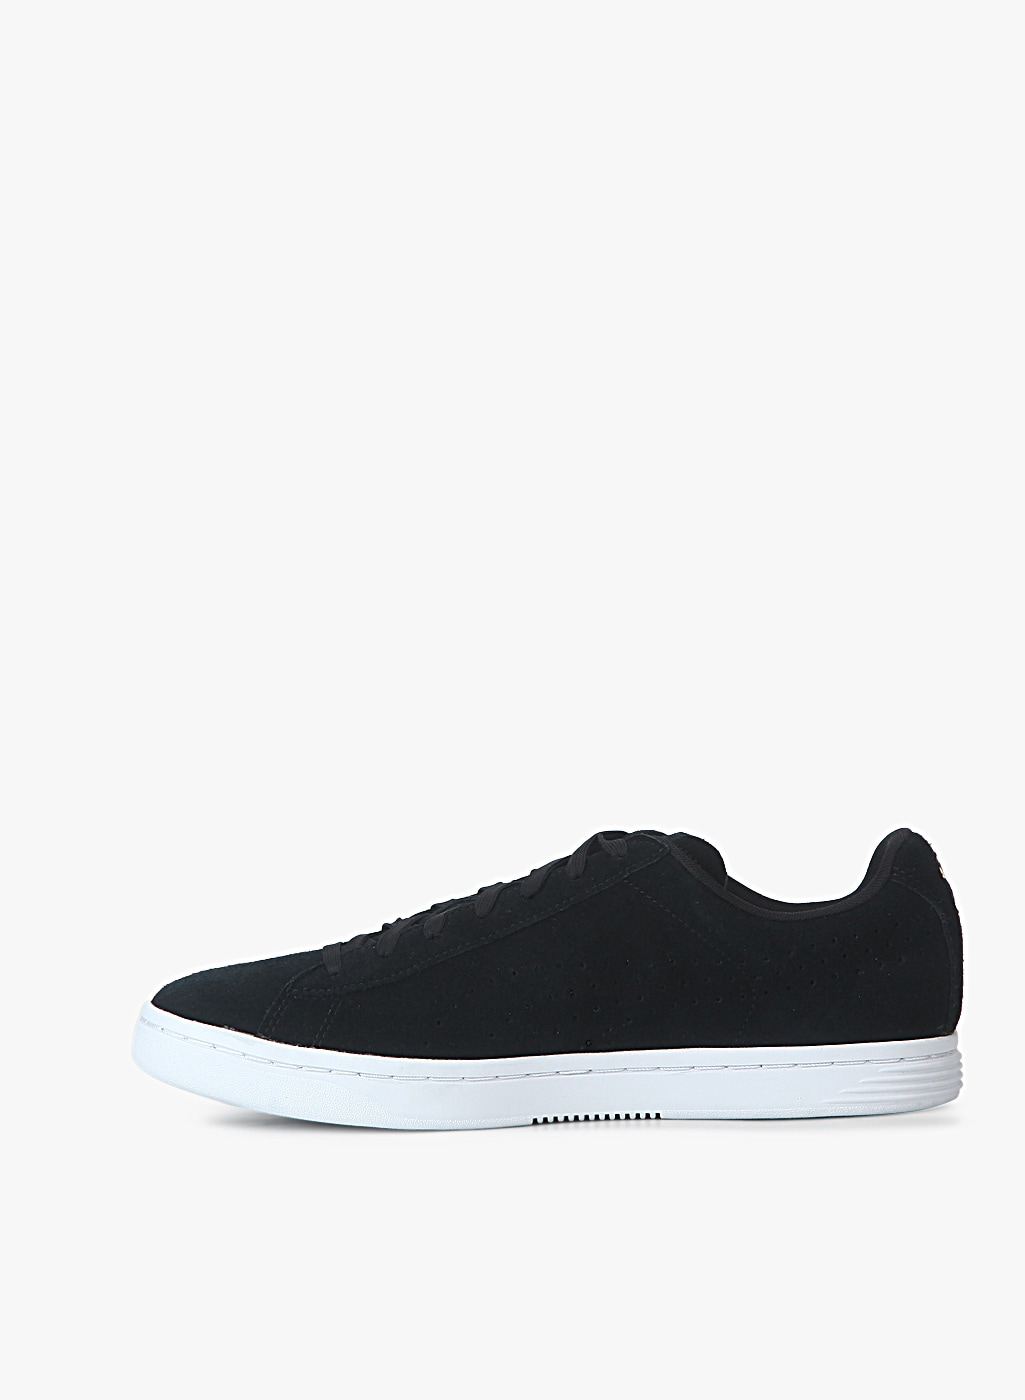 Court Star Suede Black Sneakers